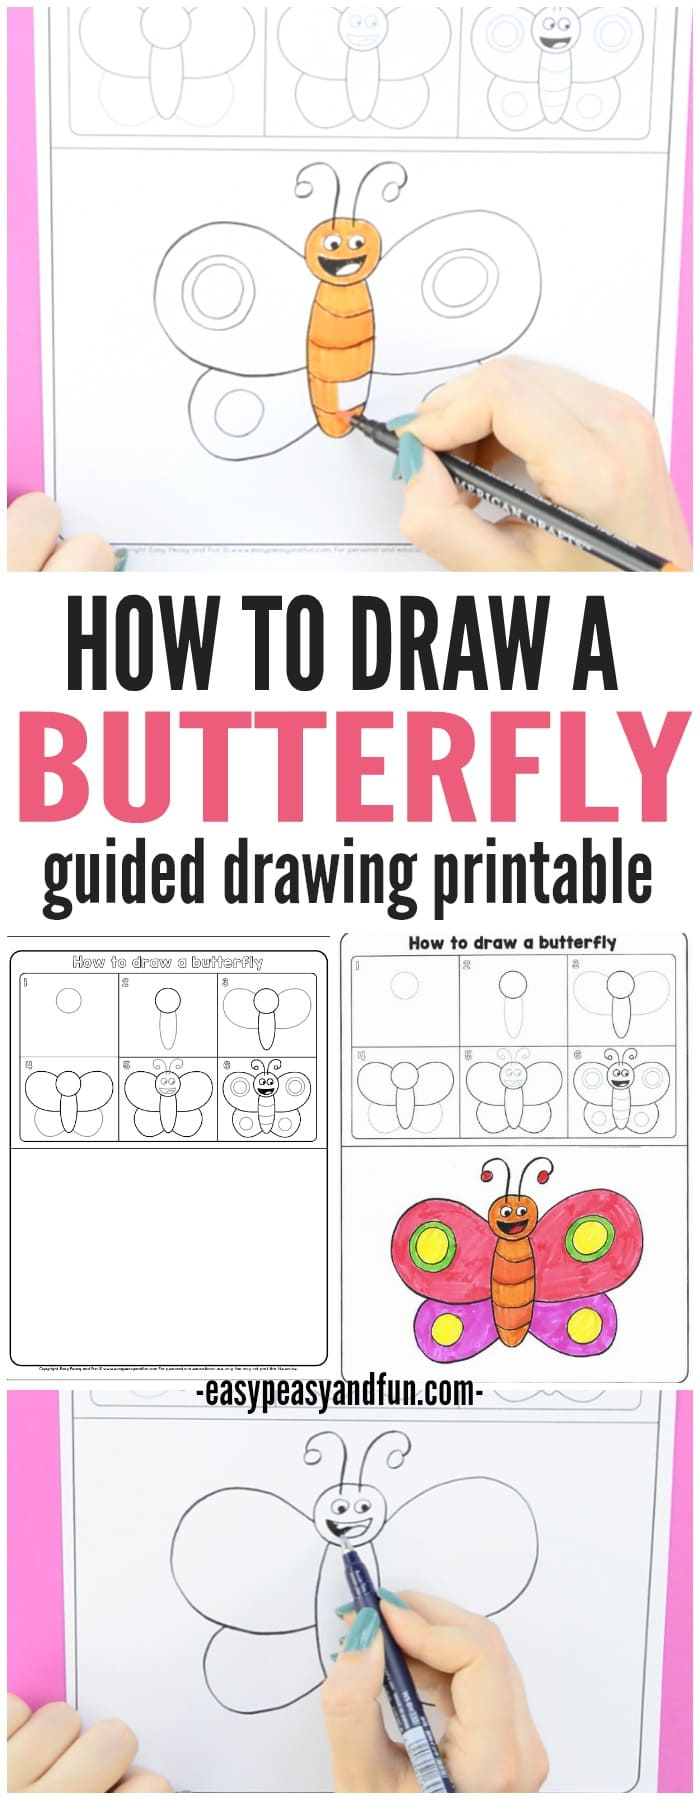 700x1800 How To Draw A Butterfly Step By Step For Kids + Printable